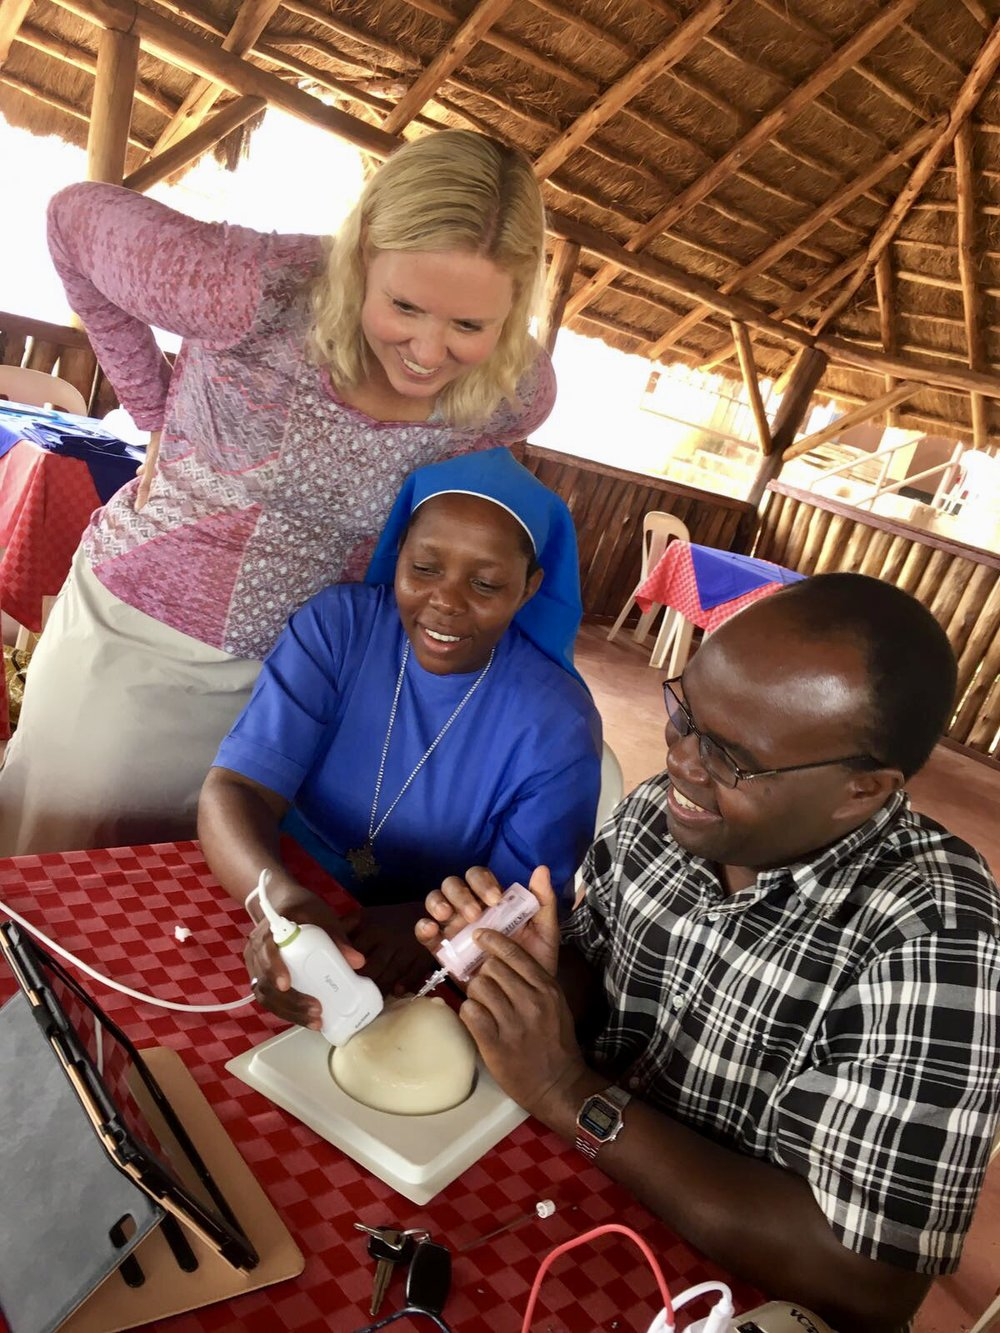 Dr. DeStigter, Sister Angela, and Dr. Alphons practicing with some new portable ultrasound units for breast biopsies along the banks of the Nile River.